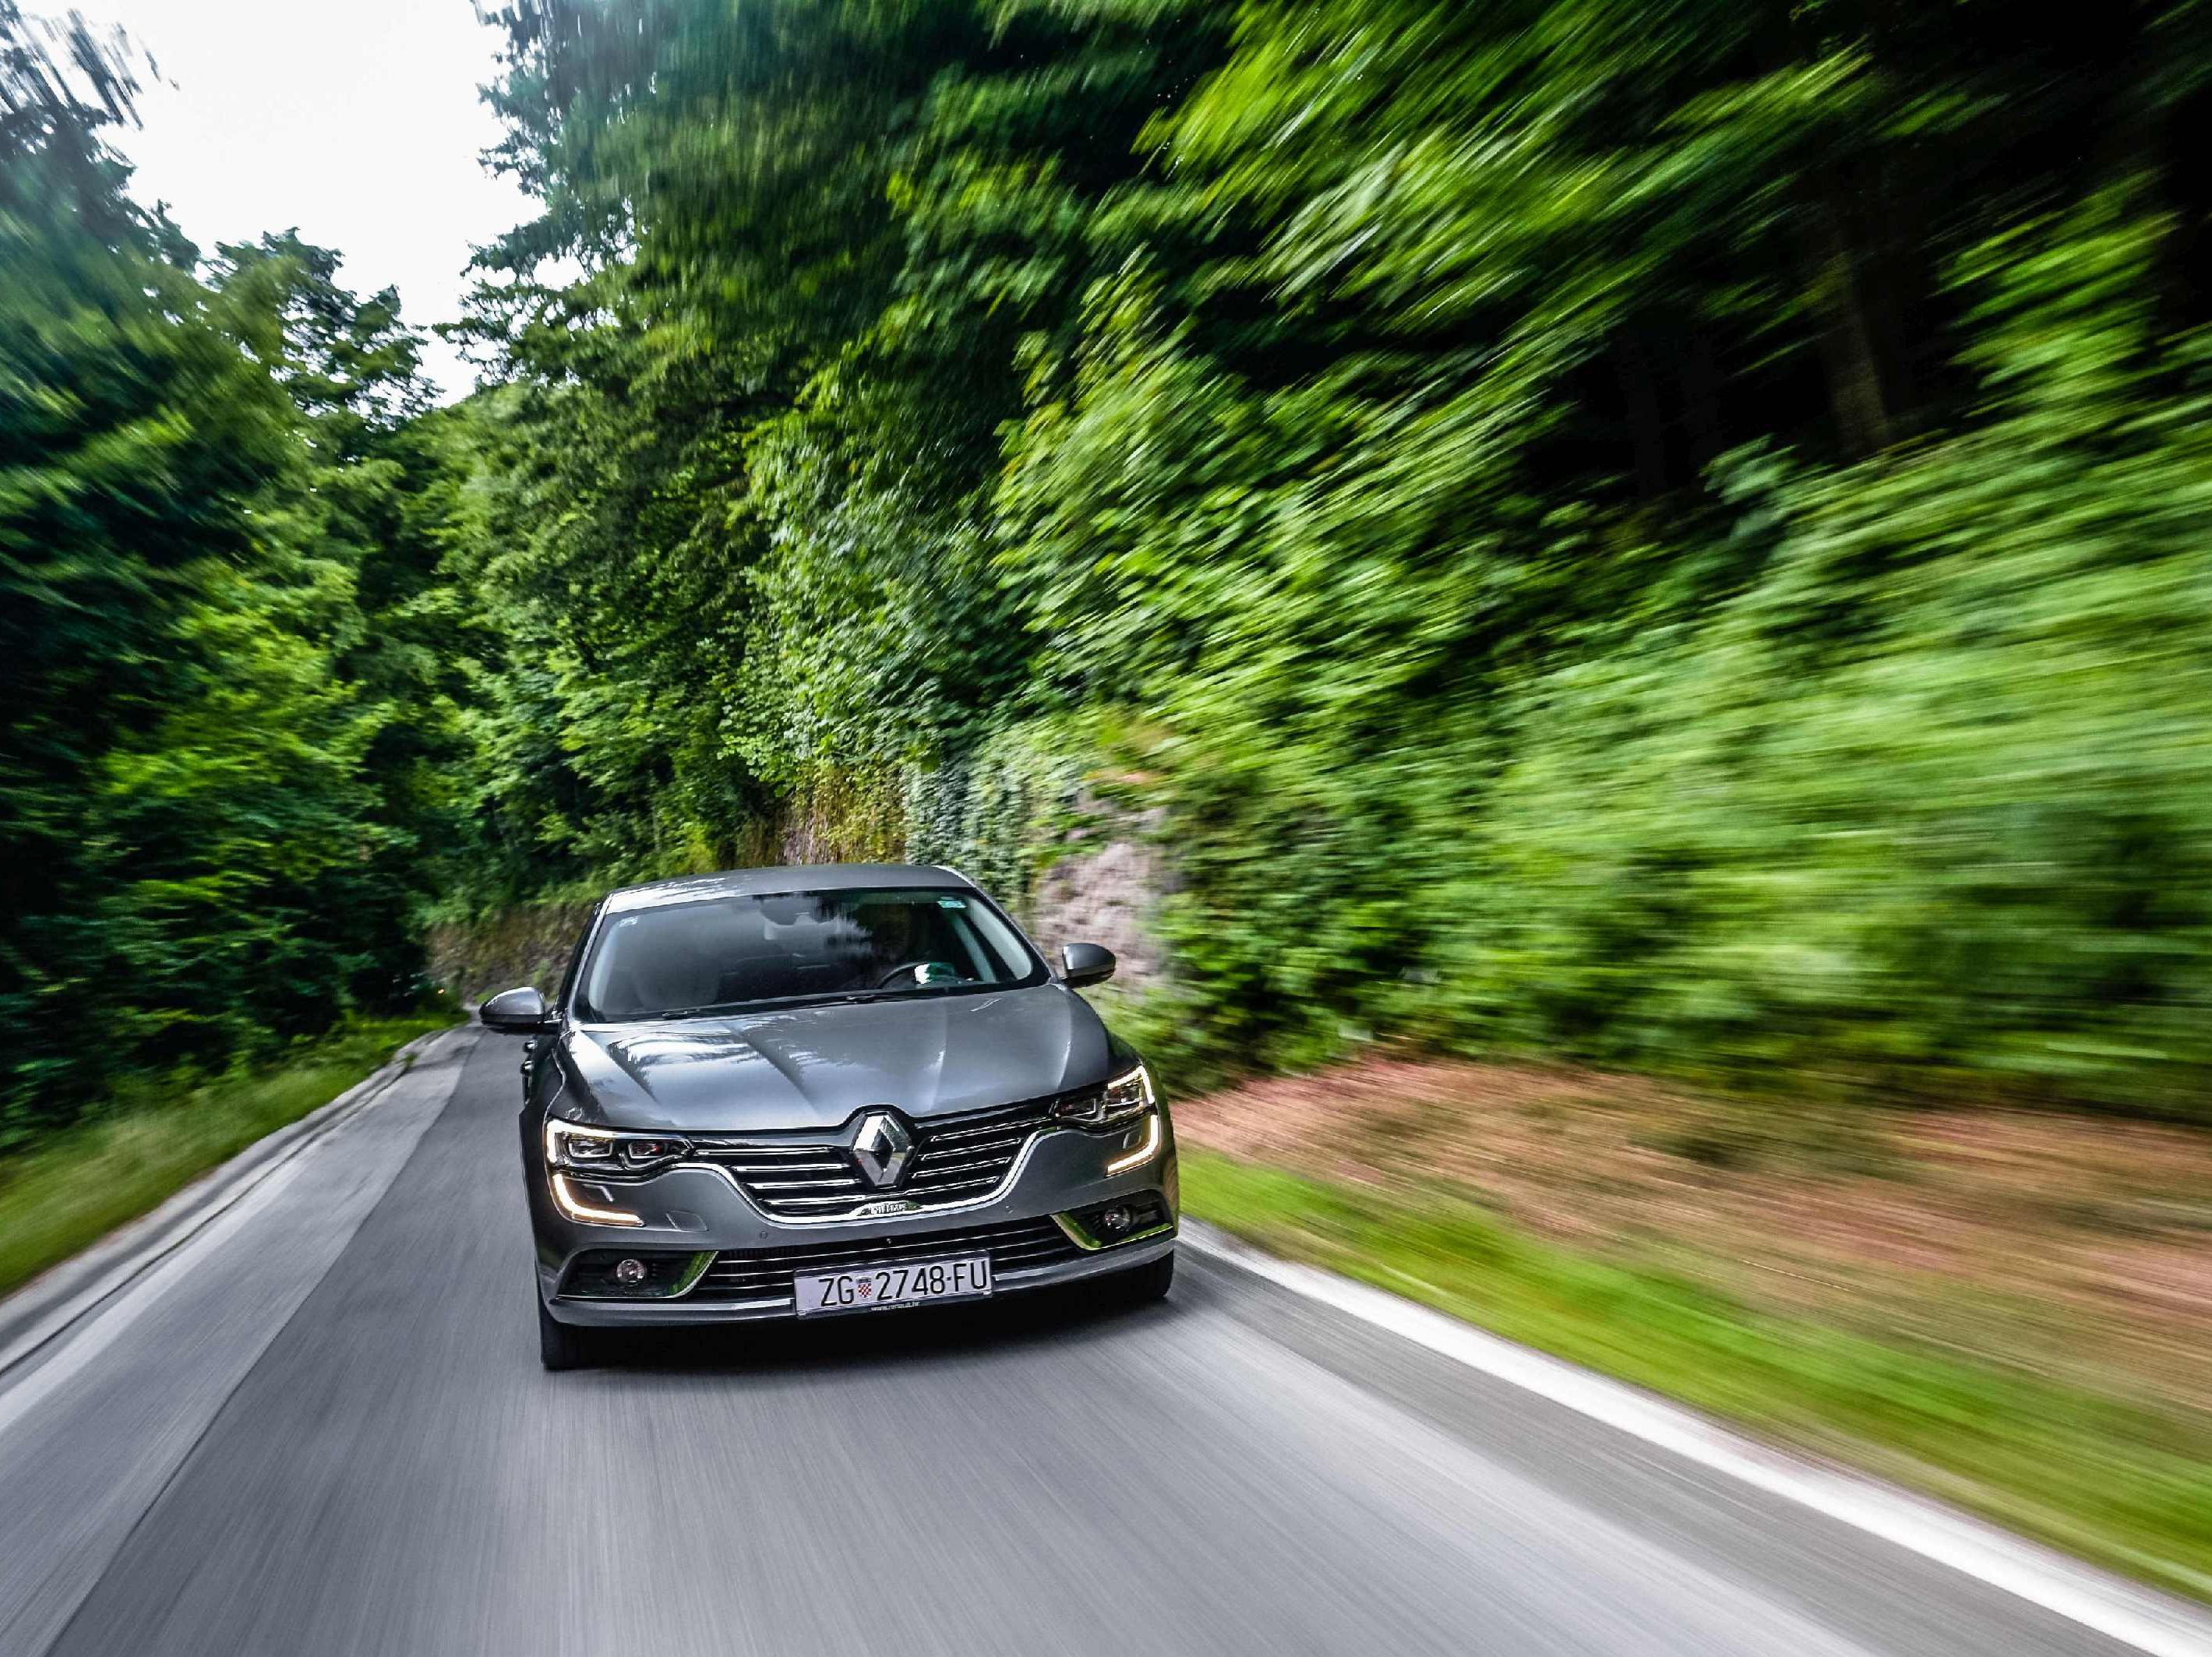 Image for Test Renault Talisman 1.6 dCi Initiale Paris